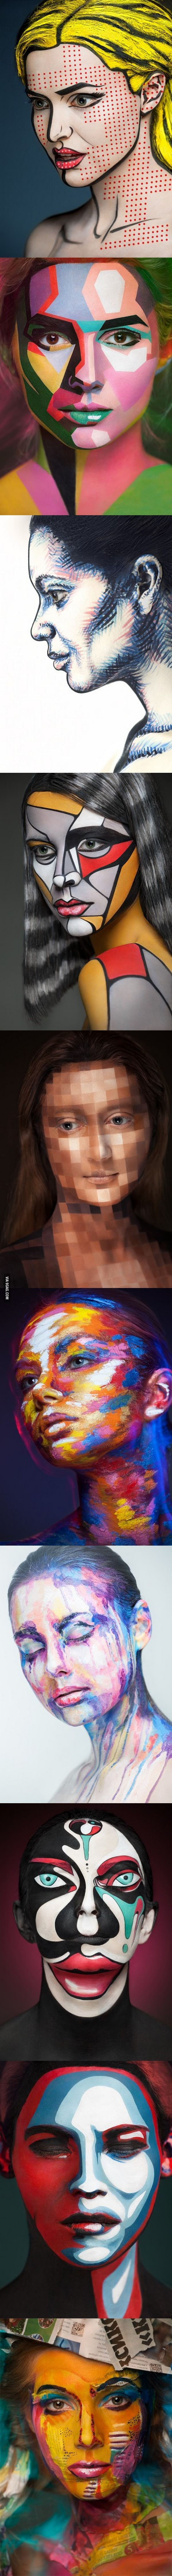 Incredible photographs of people wearing face paint AMAZING: